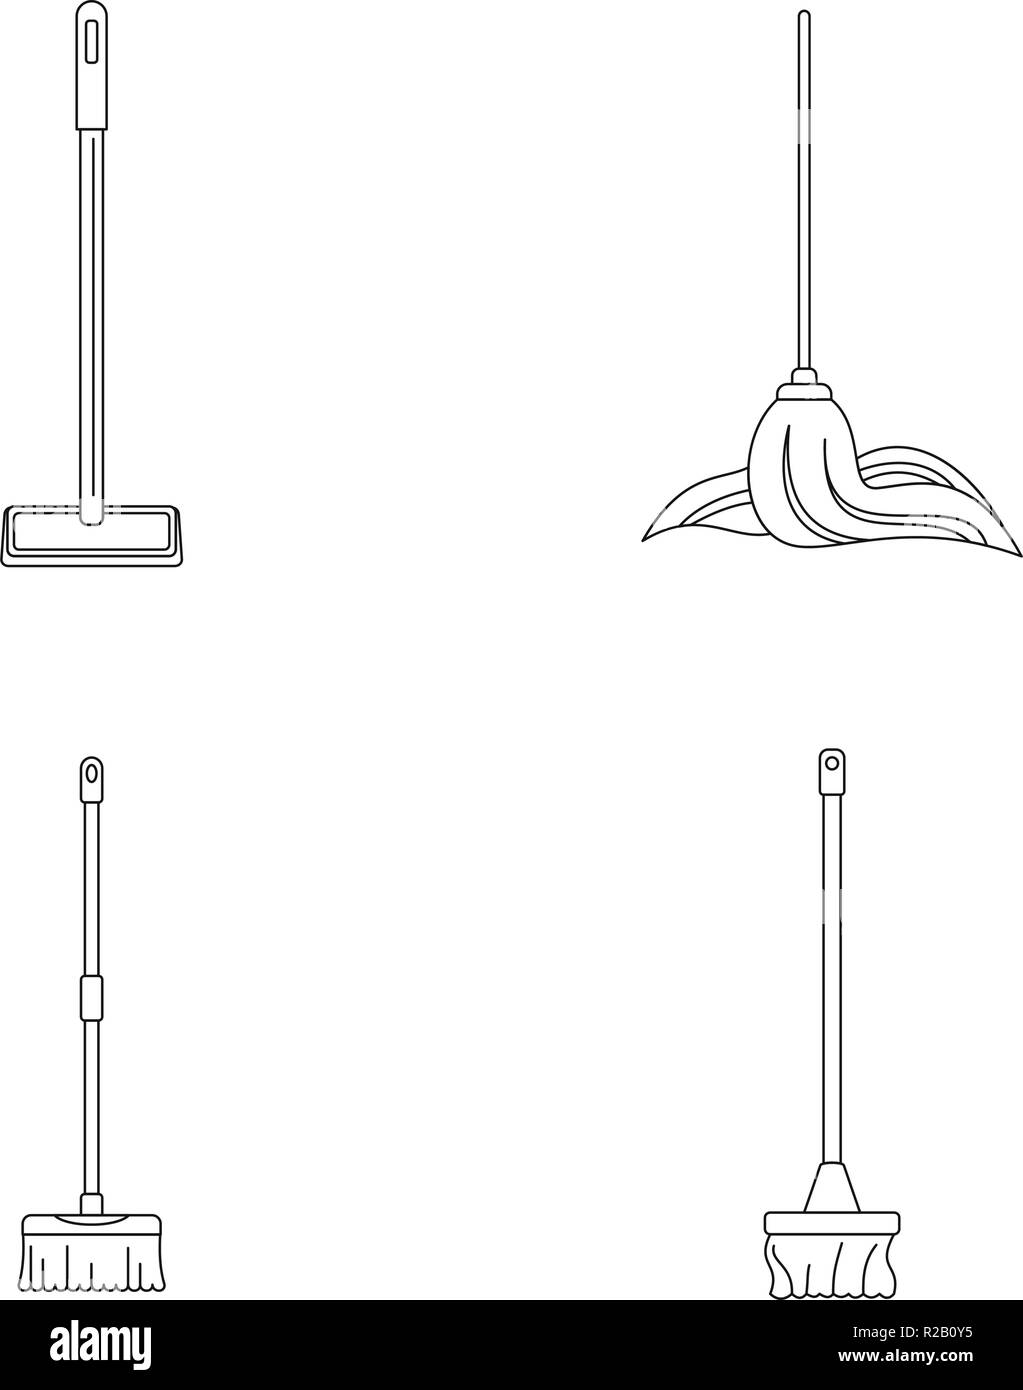 Mop cleaning swab icons set. Outline illustration of 4 mop cleaning swab vector icons for web - Stock Vector